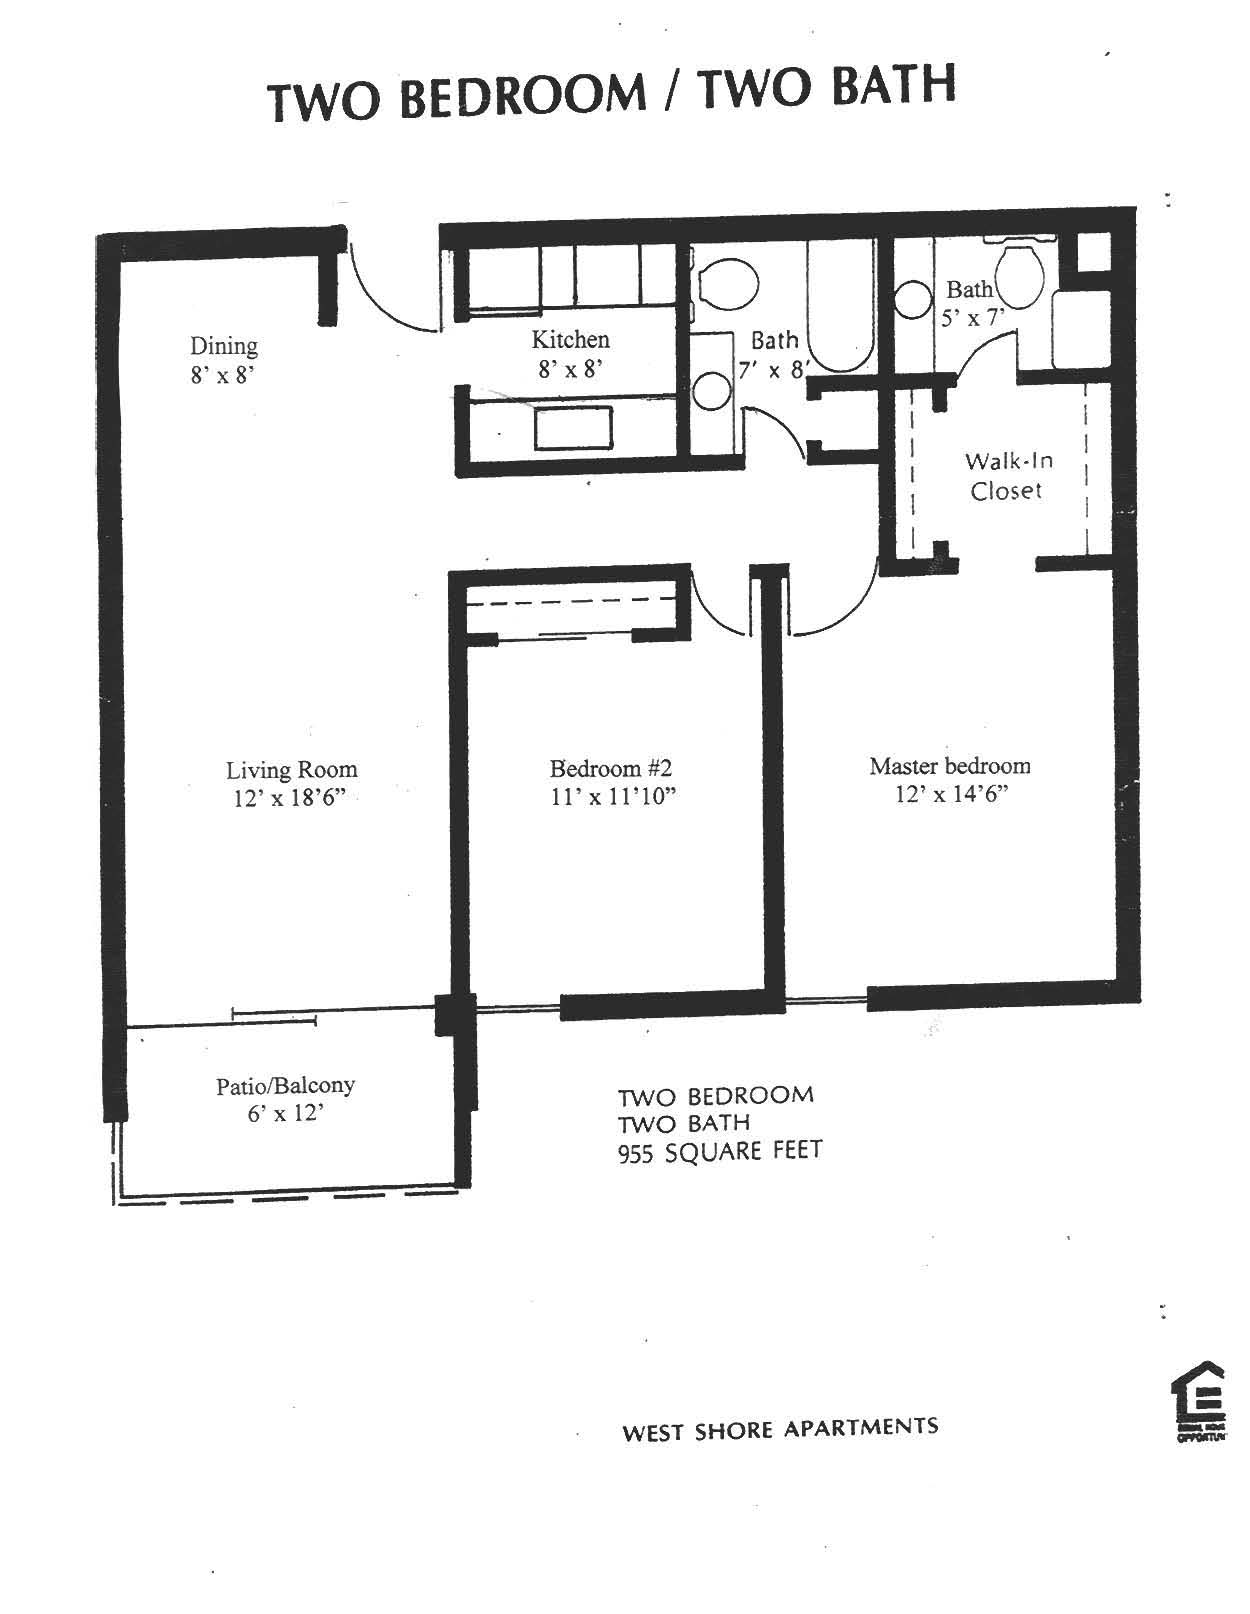 Floorplan - Westshore C2.2 - None Available image